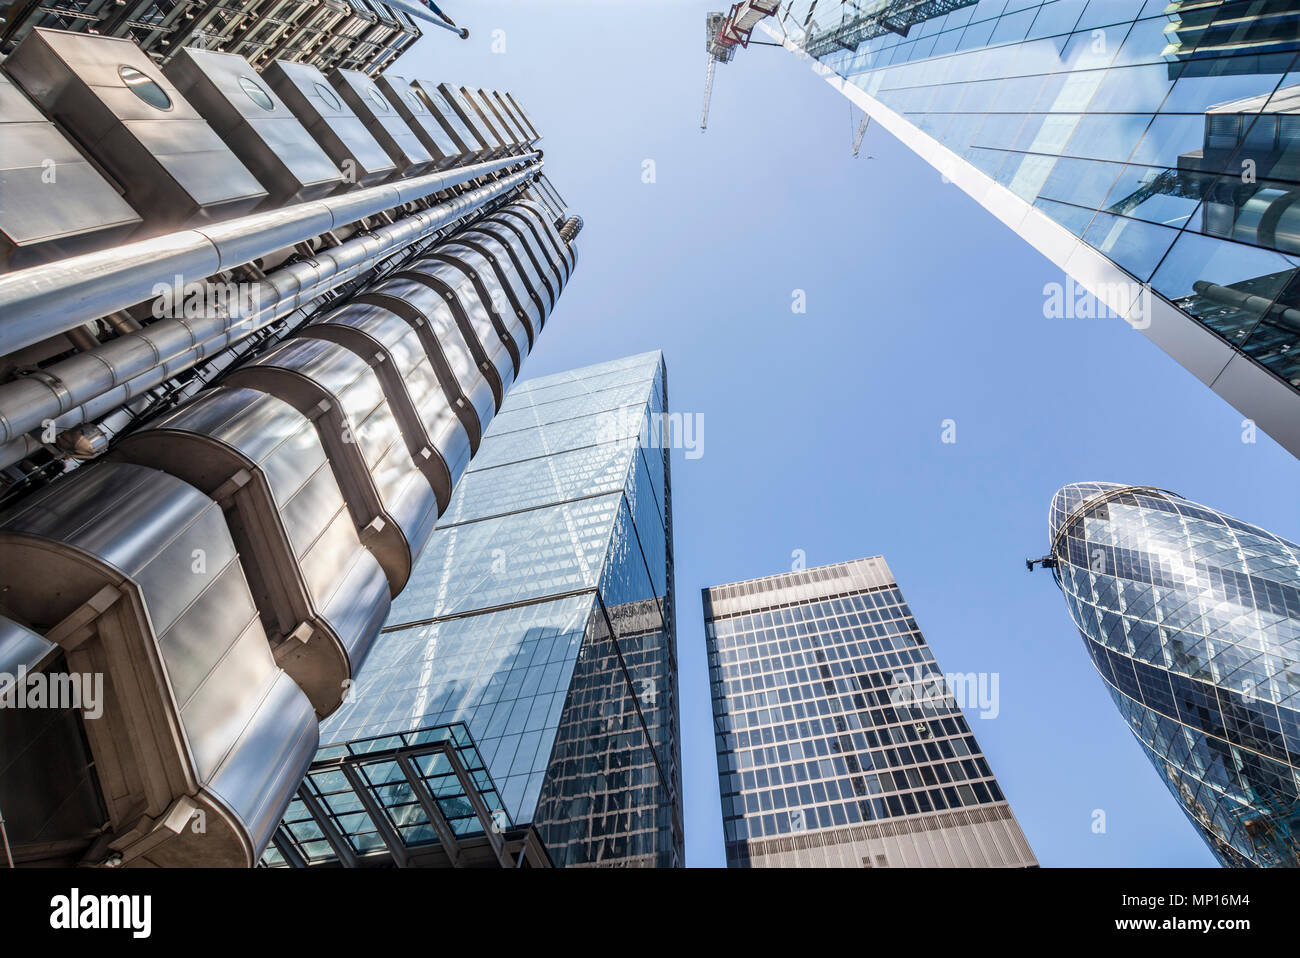 Looking up at the Lloyds Building (left), the Leadenhall Building, 122 Leadenhall Street, the Gherkin and the Scalpel in London. - Stock Image